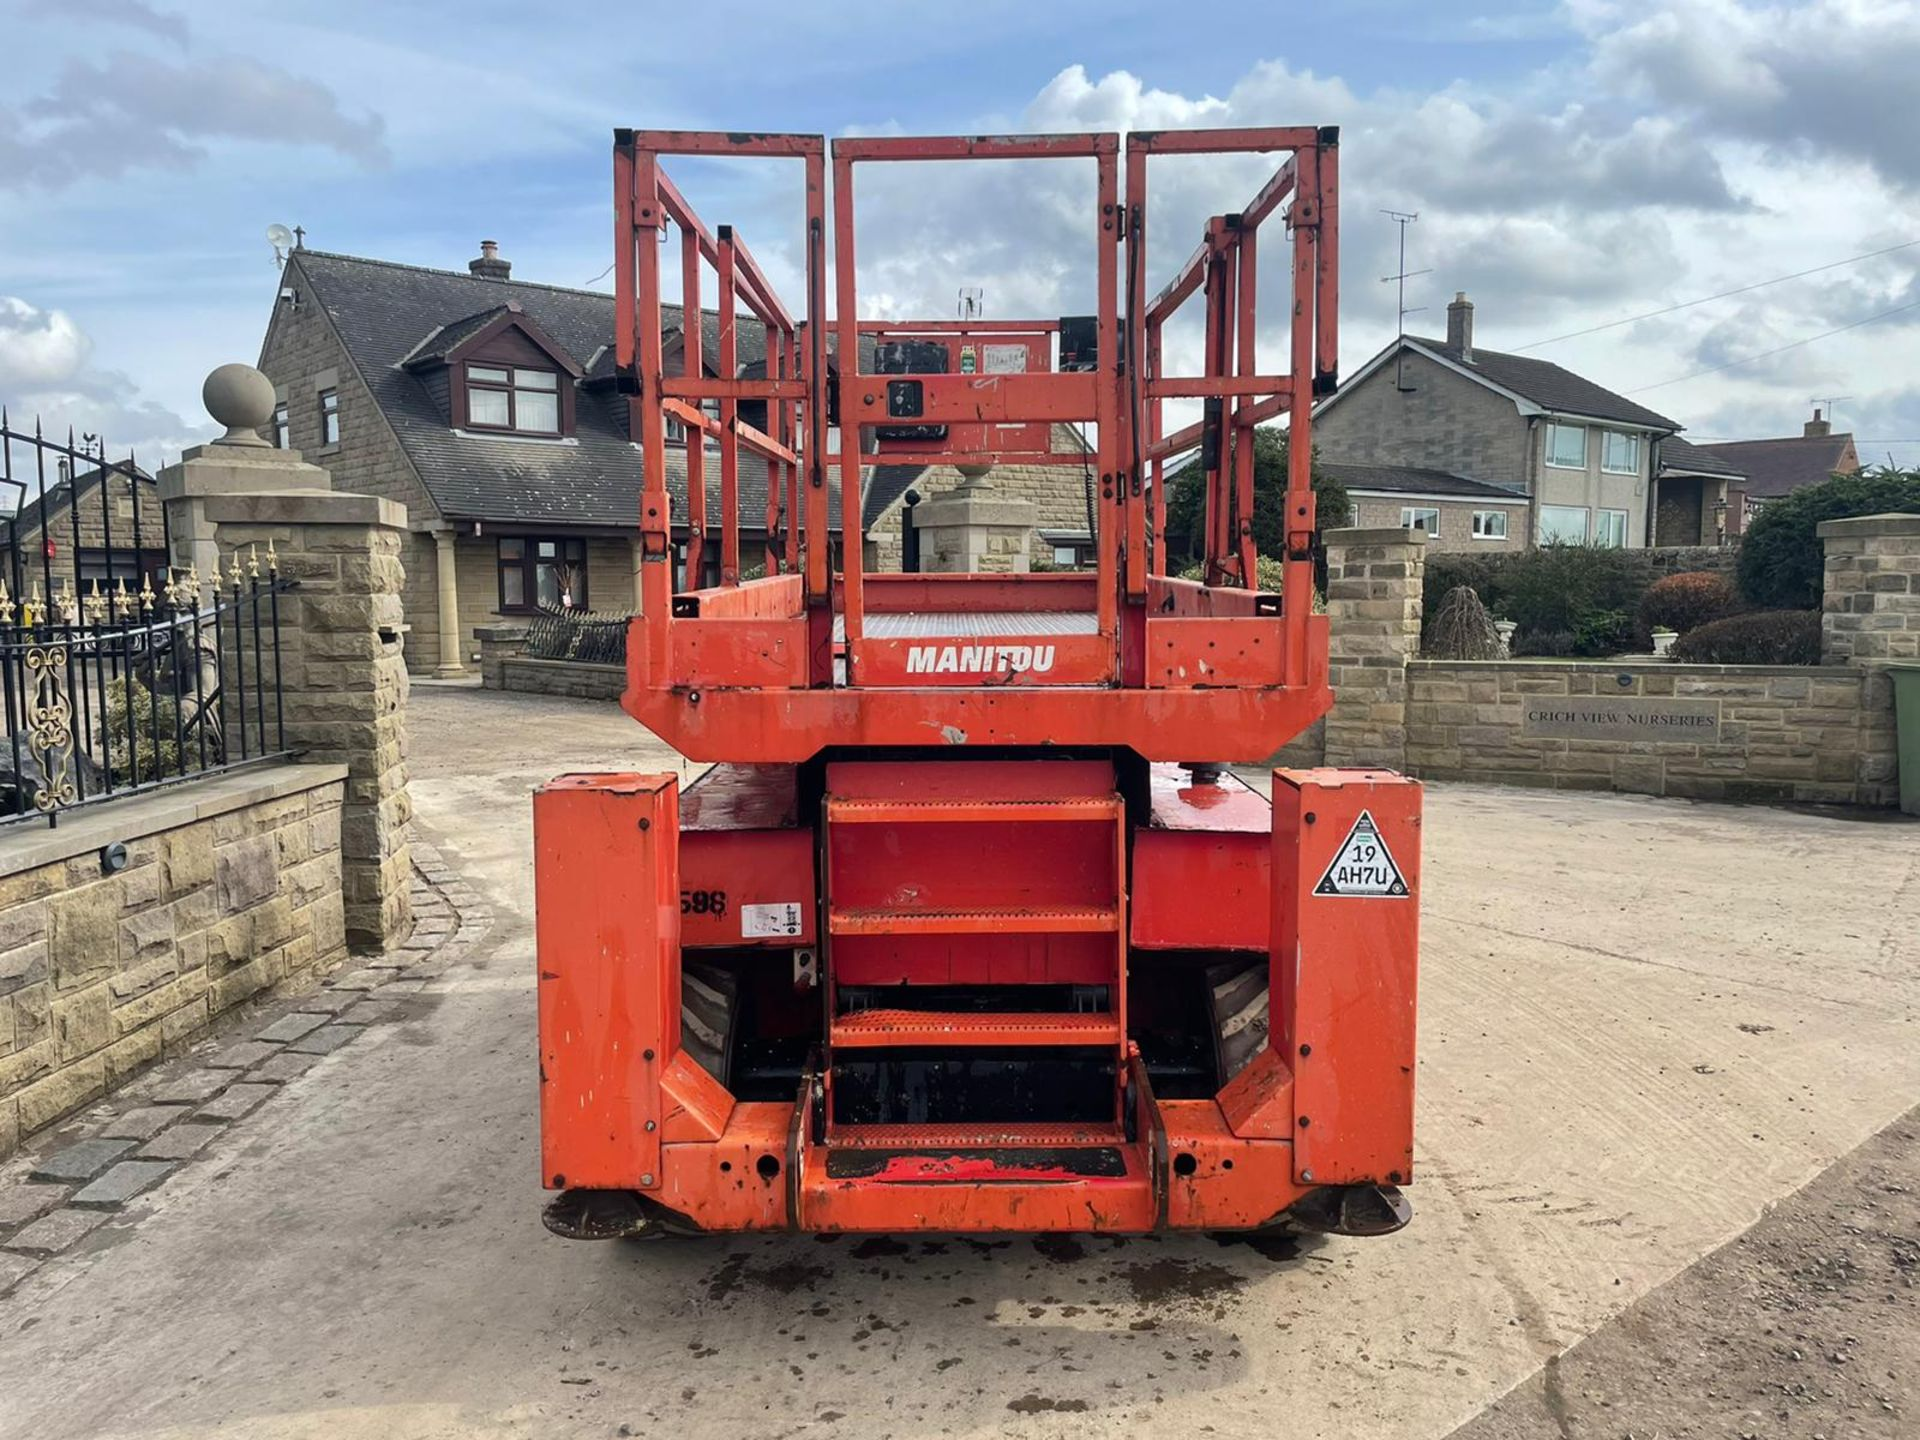 2013 MANITOU MANI-ACCESS 120SC SCISSOR LIFT, RUNS, DRIVES AND LIFTS *PLUS VAT* - Image 12 of 12